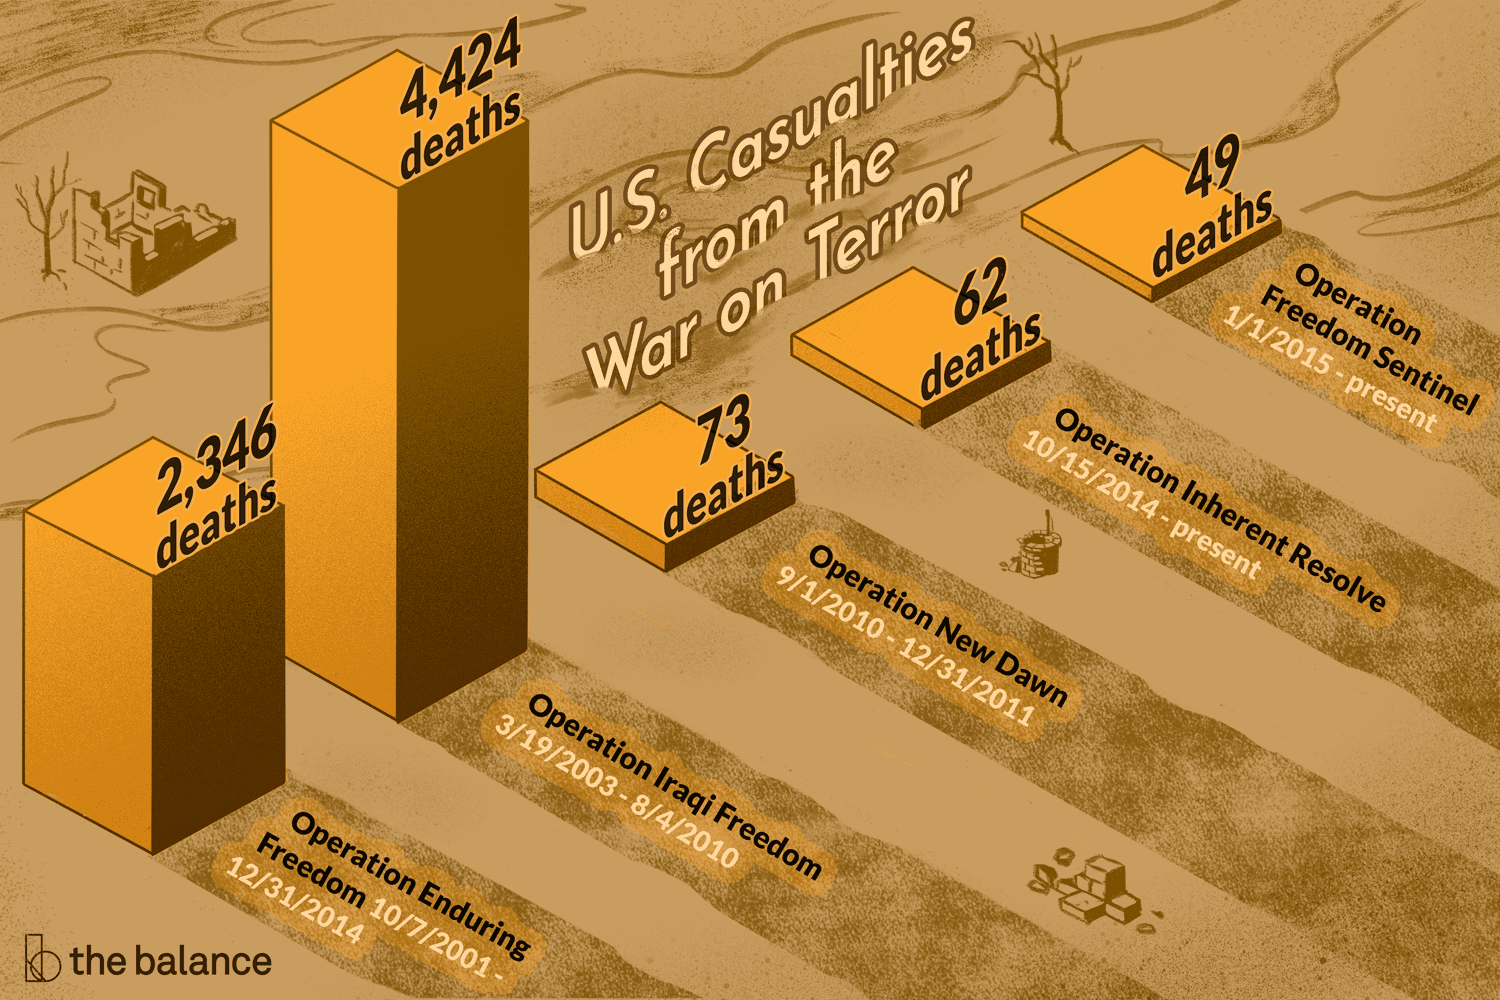 Casualty Statistics From the War on Terrorism